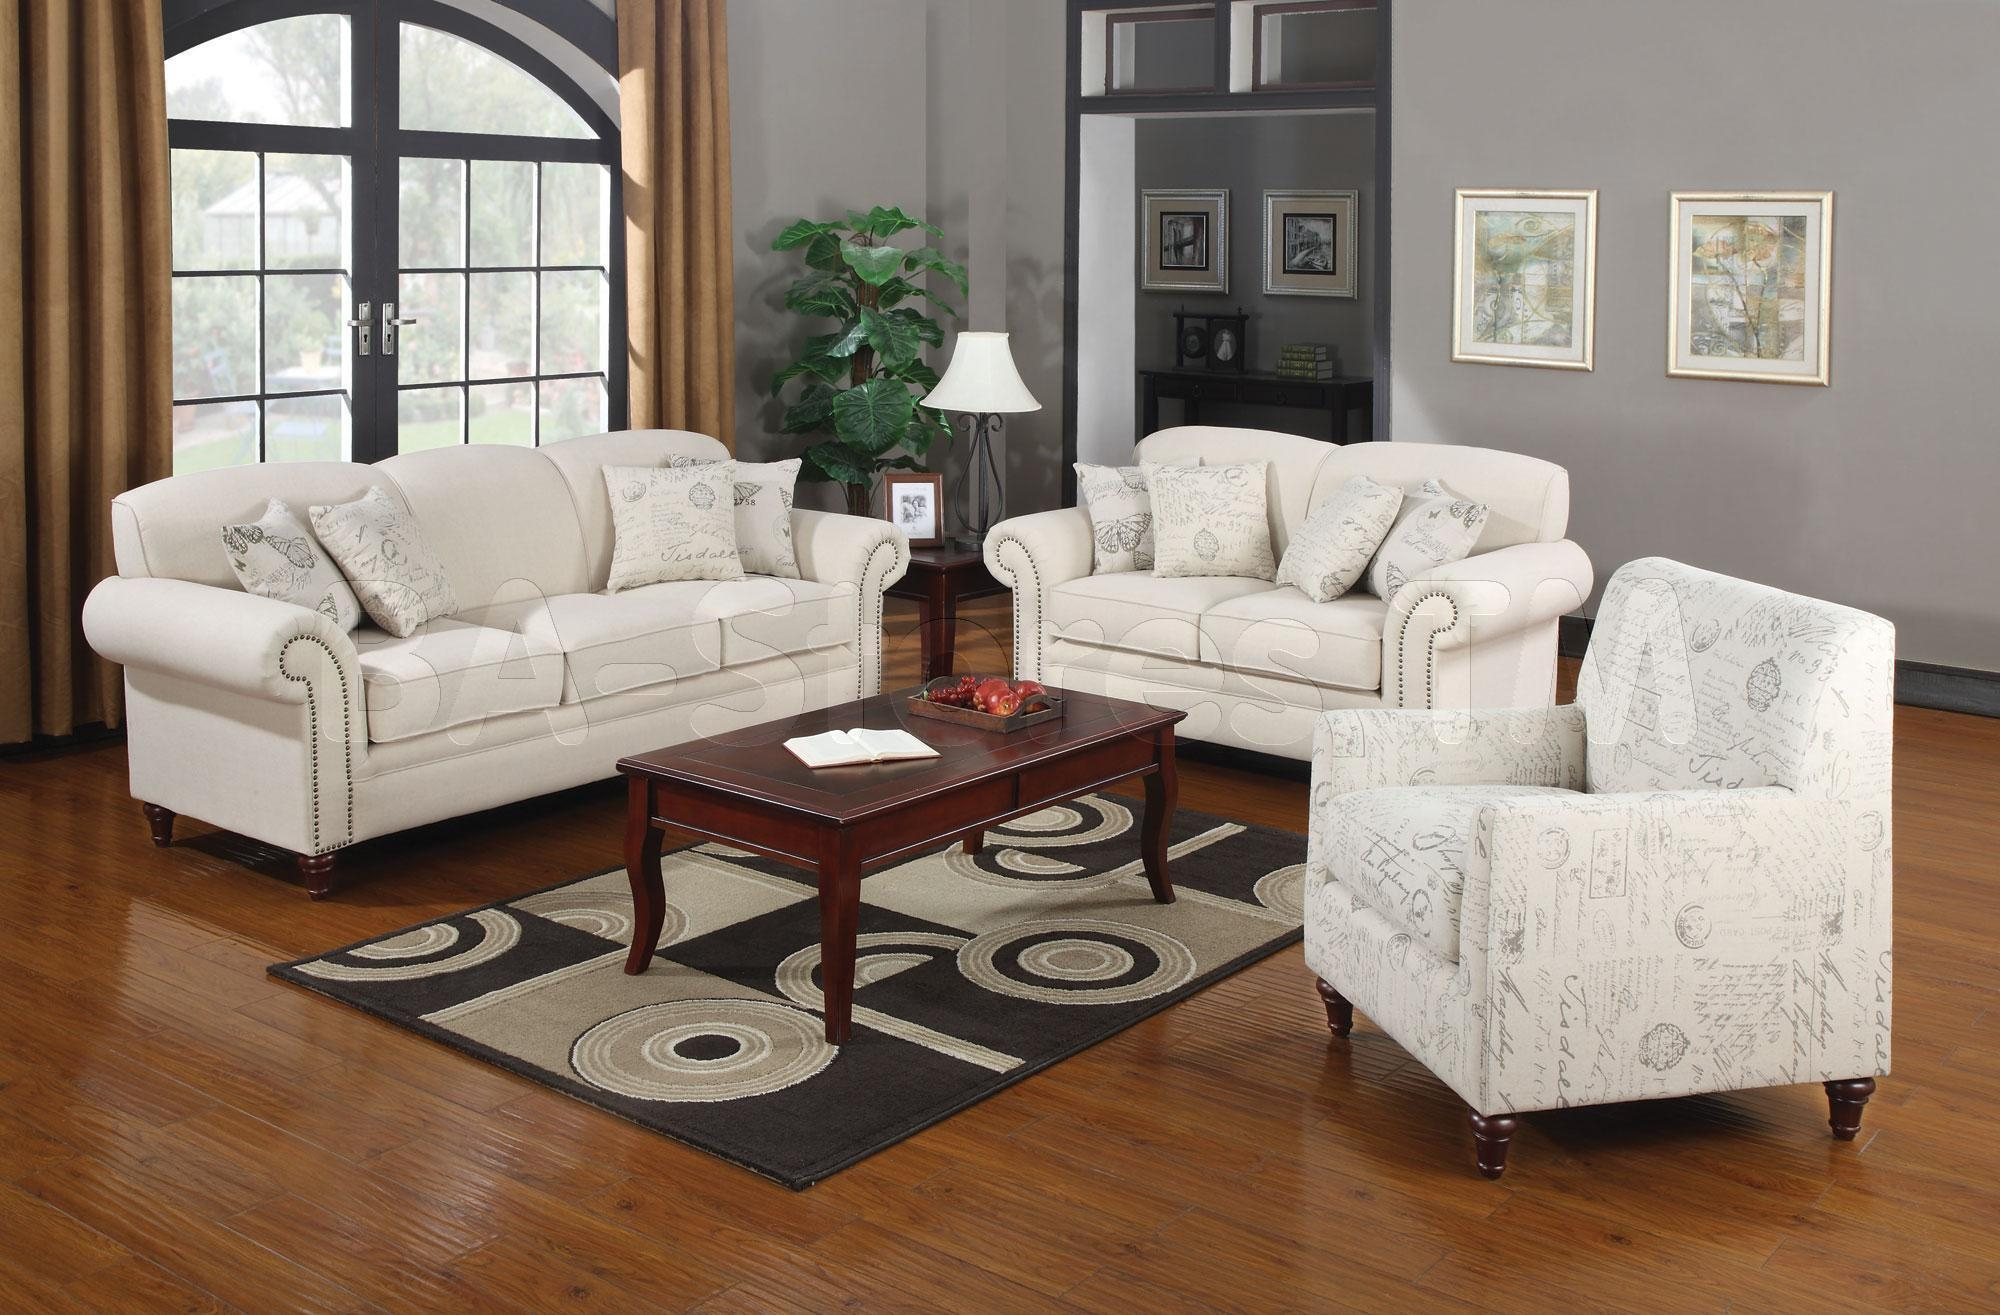 Furniture: Good Living Room Sets Near Me Black Living Room Sets Throughout Sofa Chairs For Living Room (Image 8 of 20)